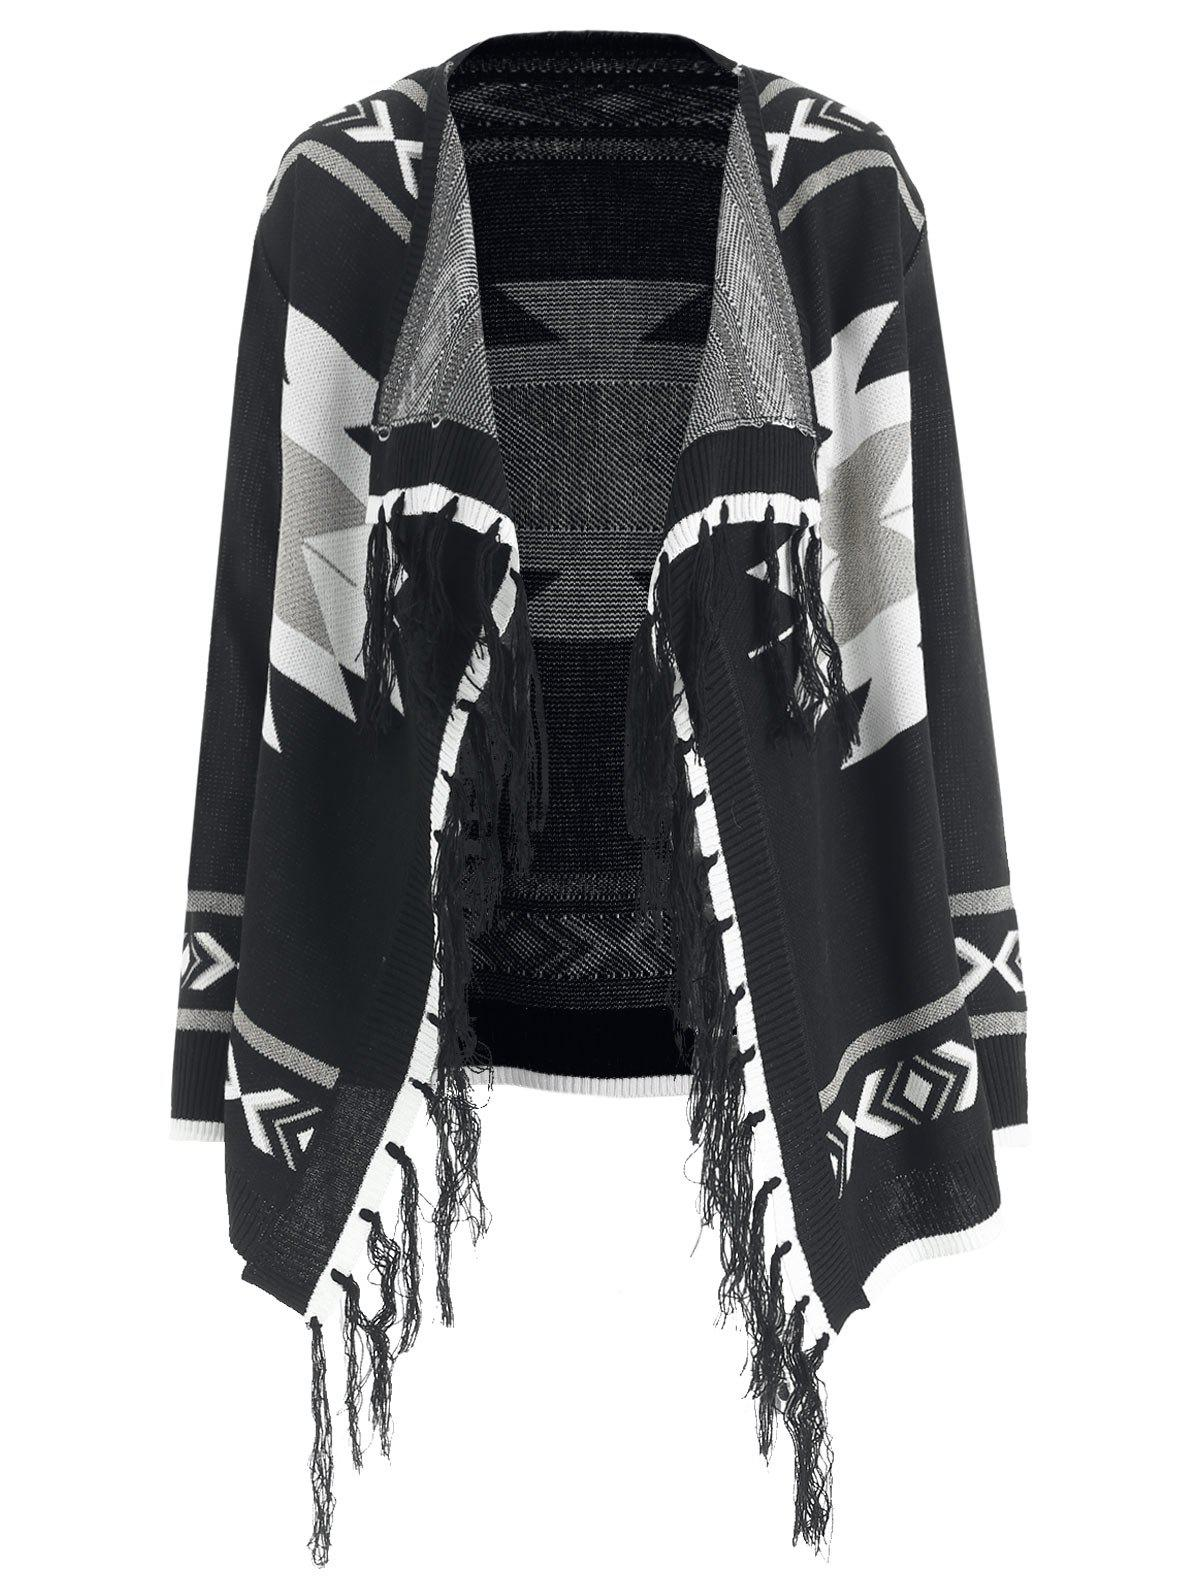 Aztec Pattern Tassel Shiny Knit Cardigan - BLACK M